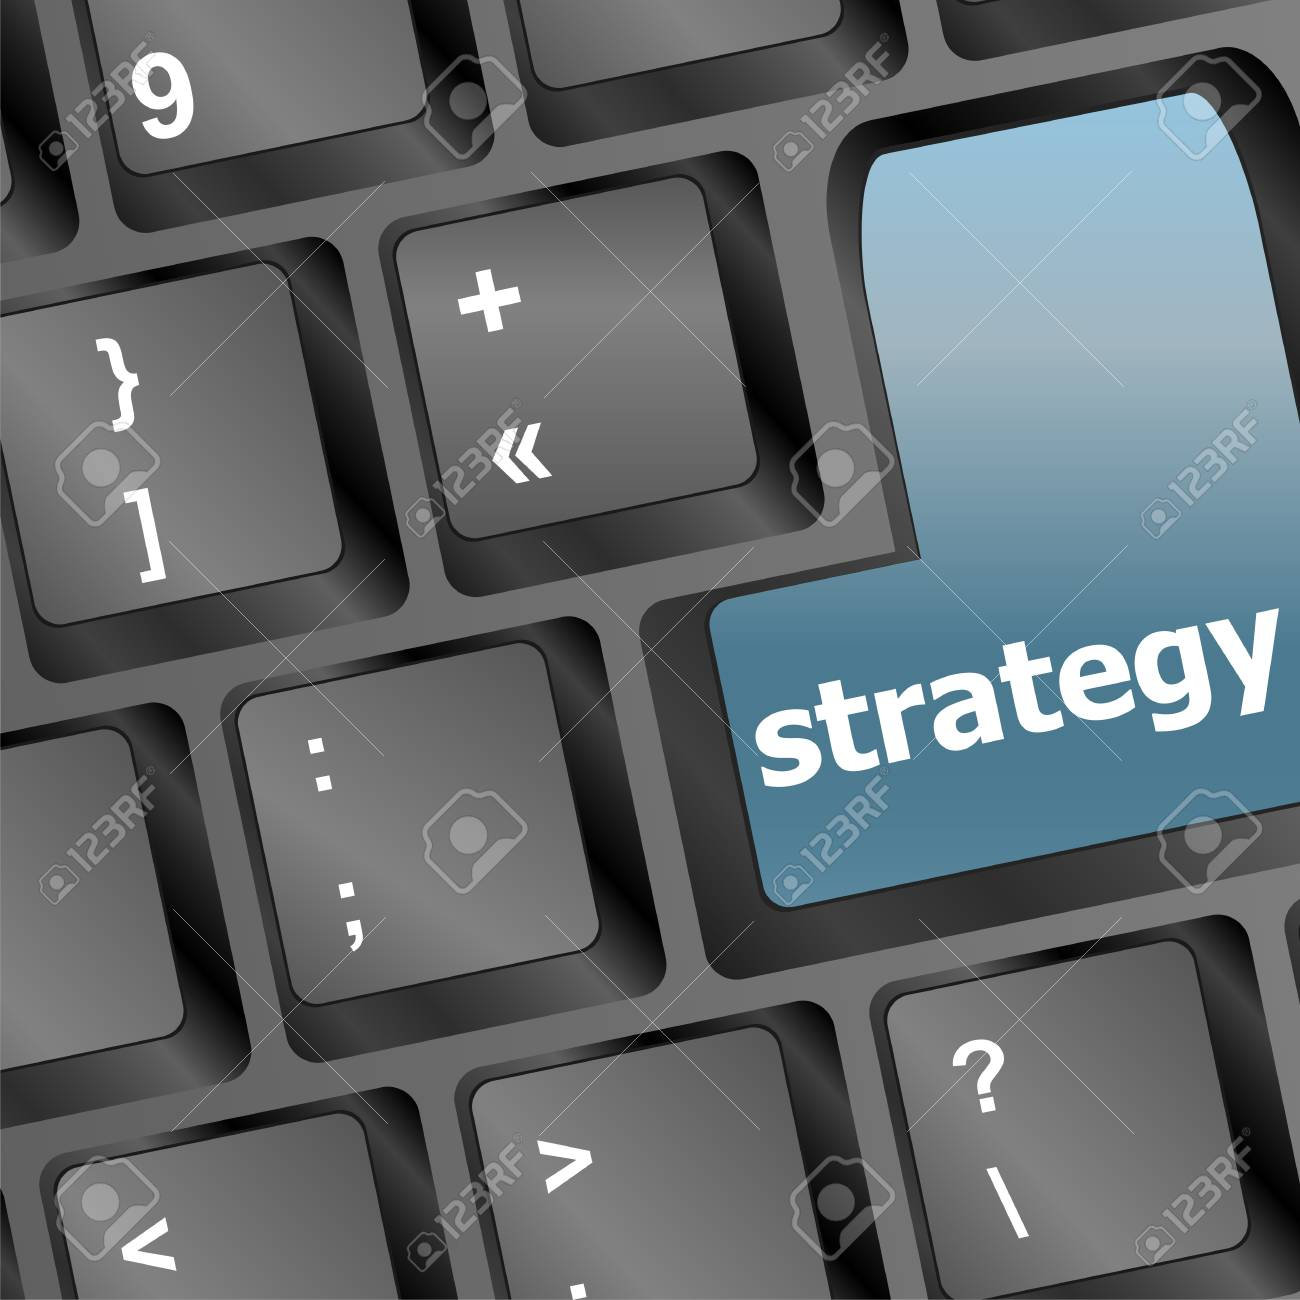 Strategy Text With Thumbs Up Symbol On Keyboard Royalty Free